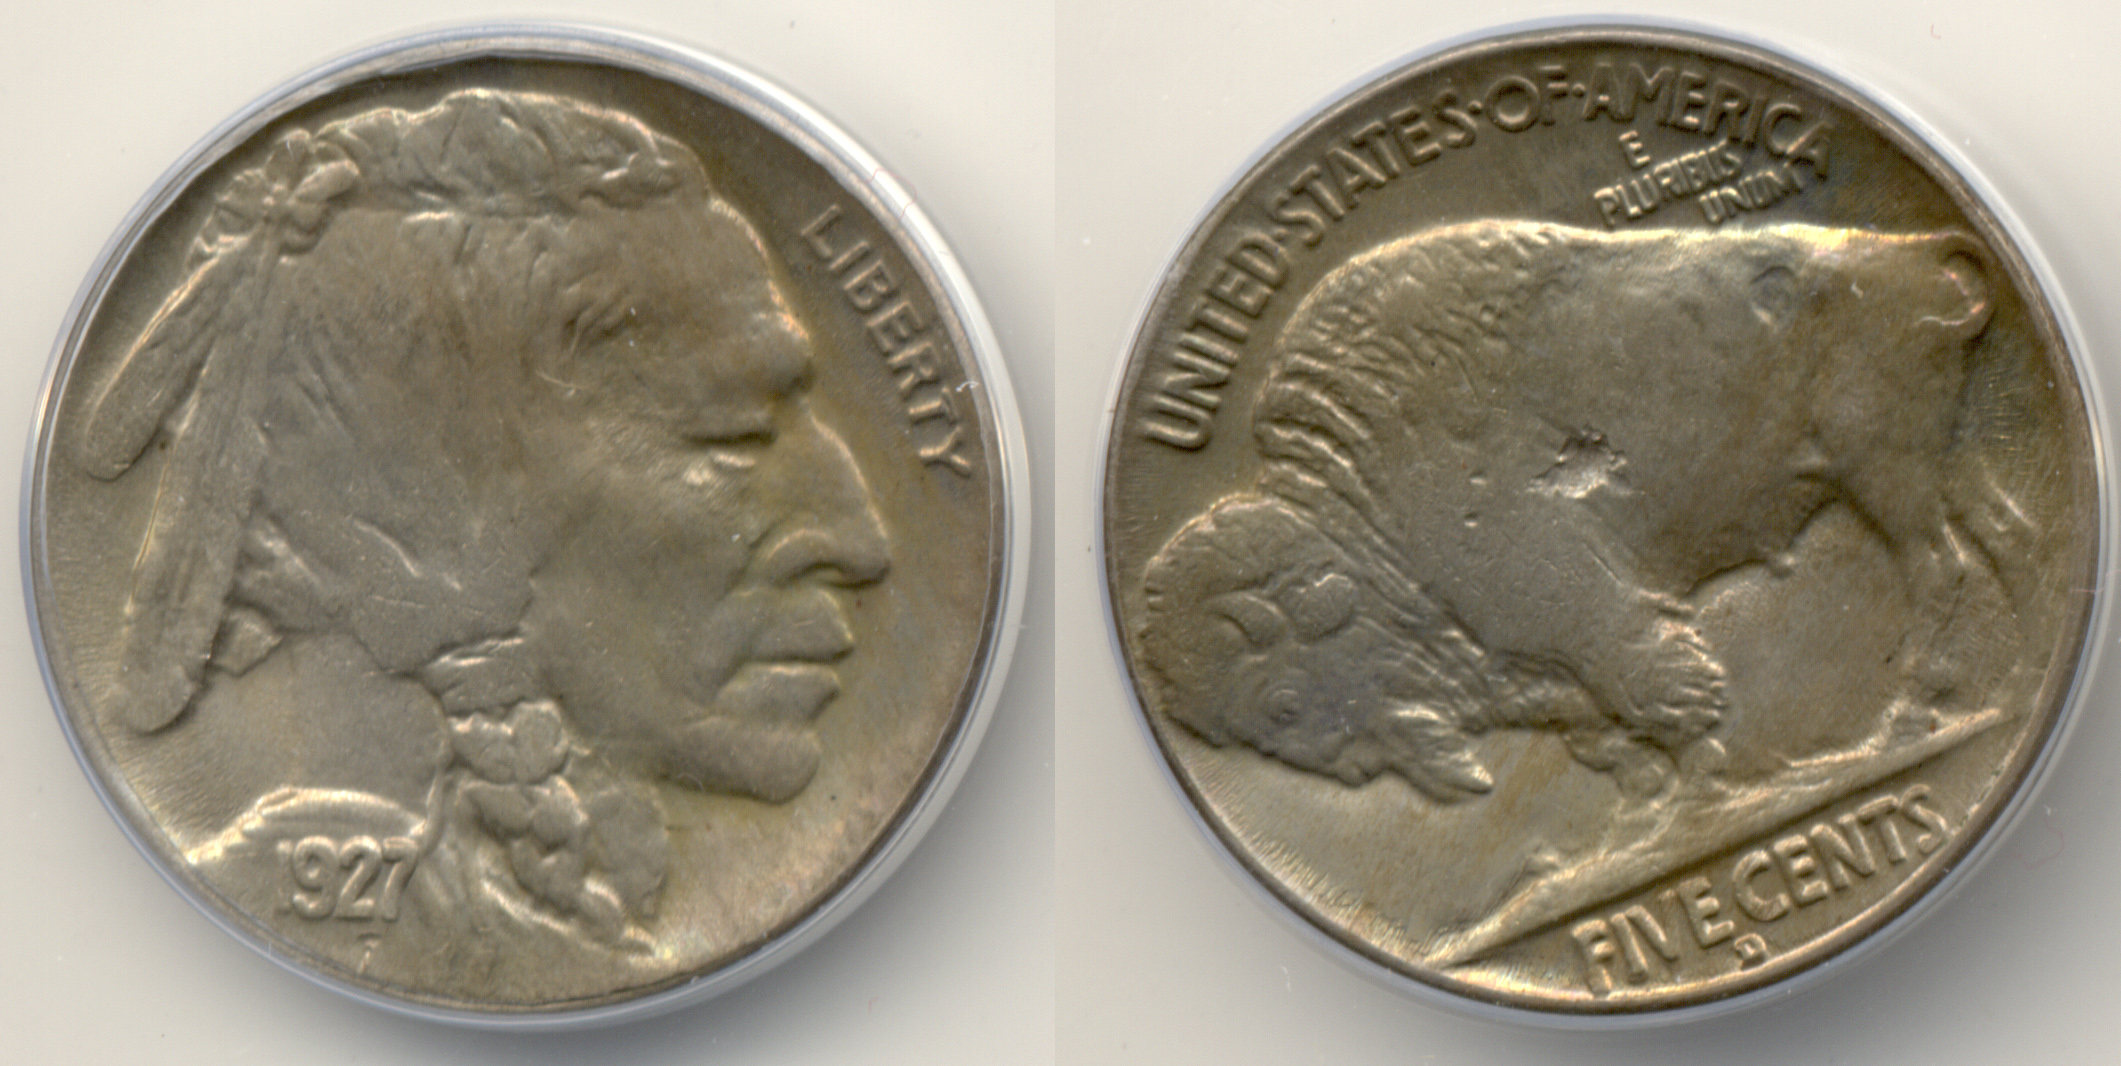 1927-D Buffalo Nickel ANACS MS-64 Struck Through Error